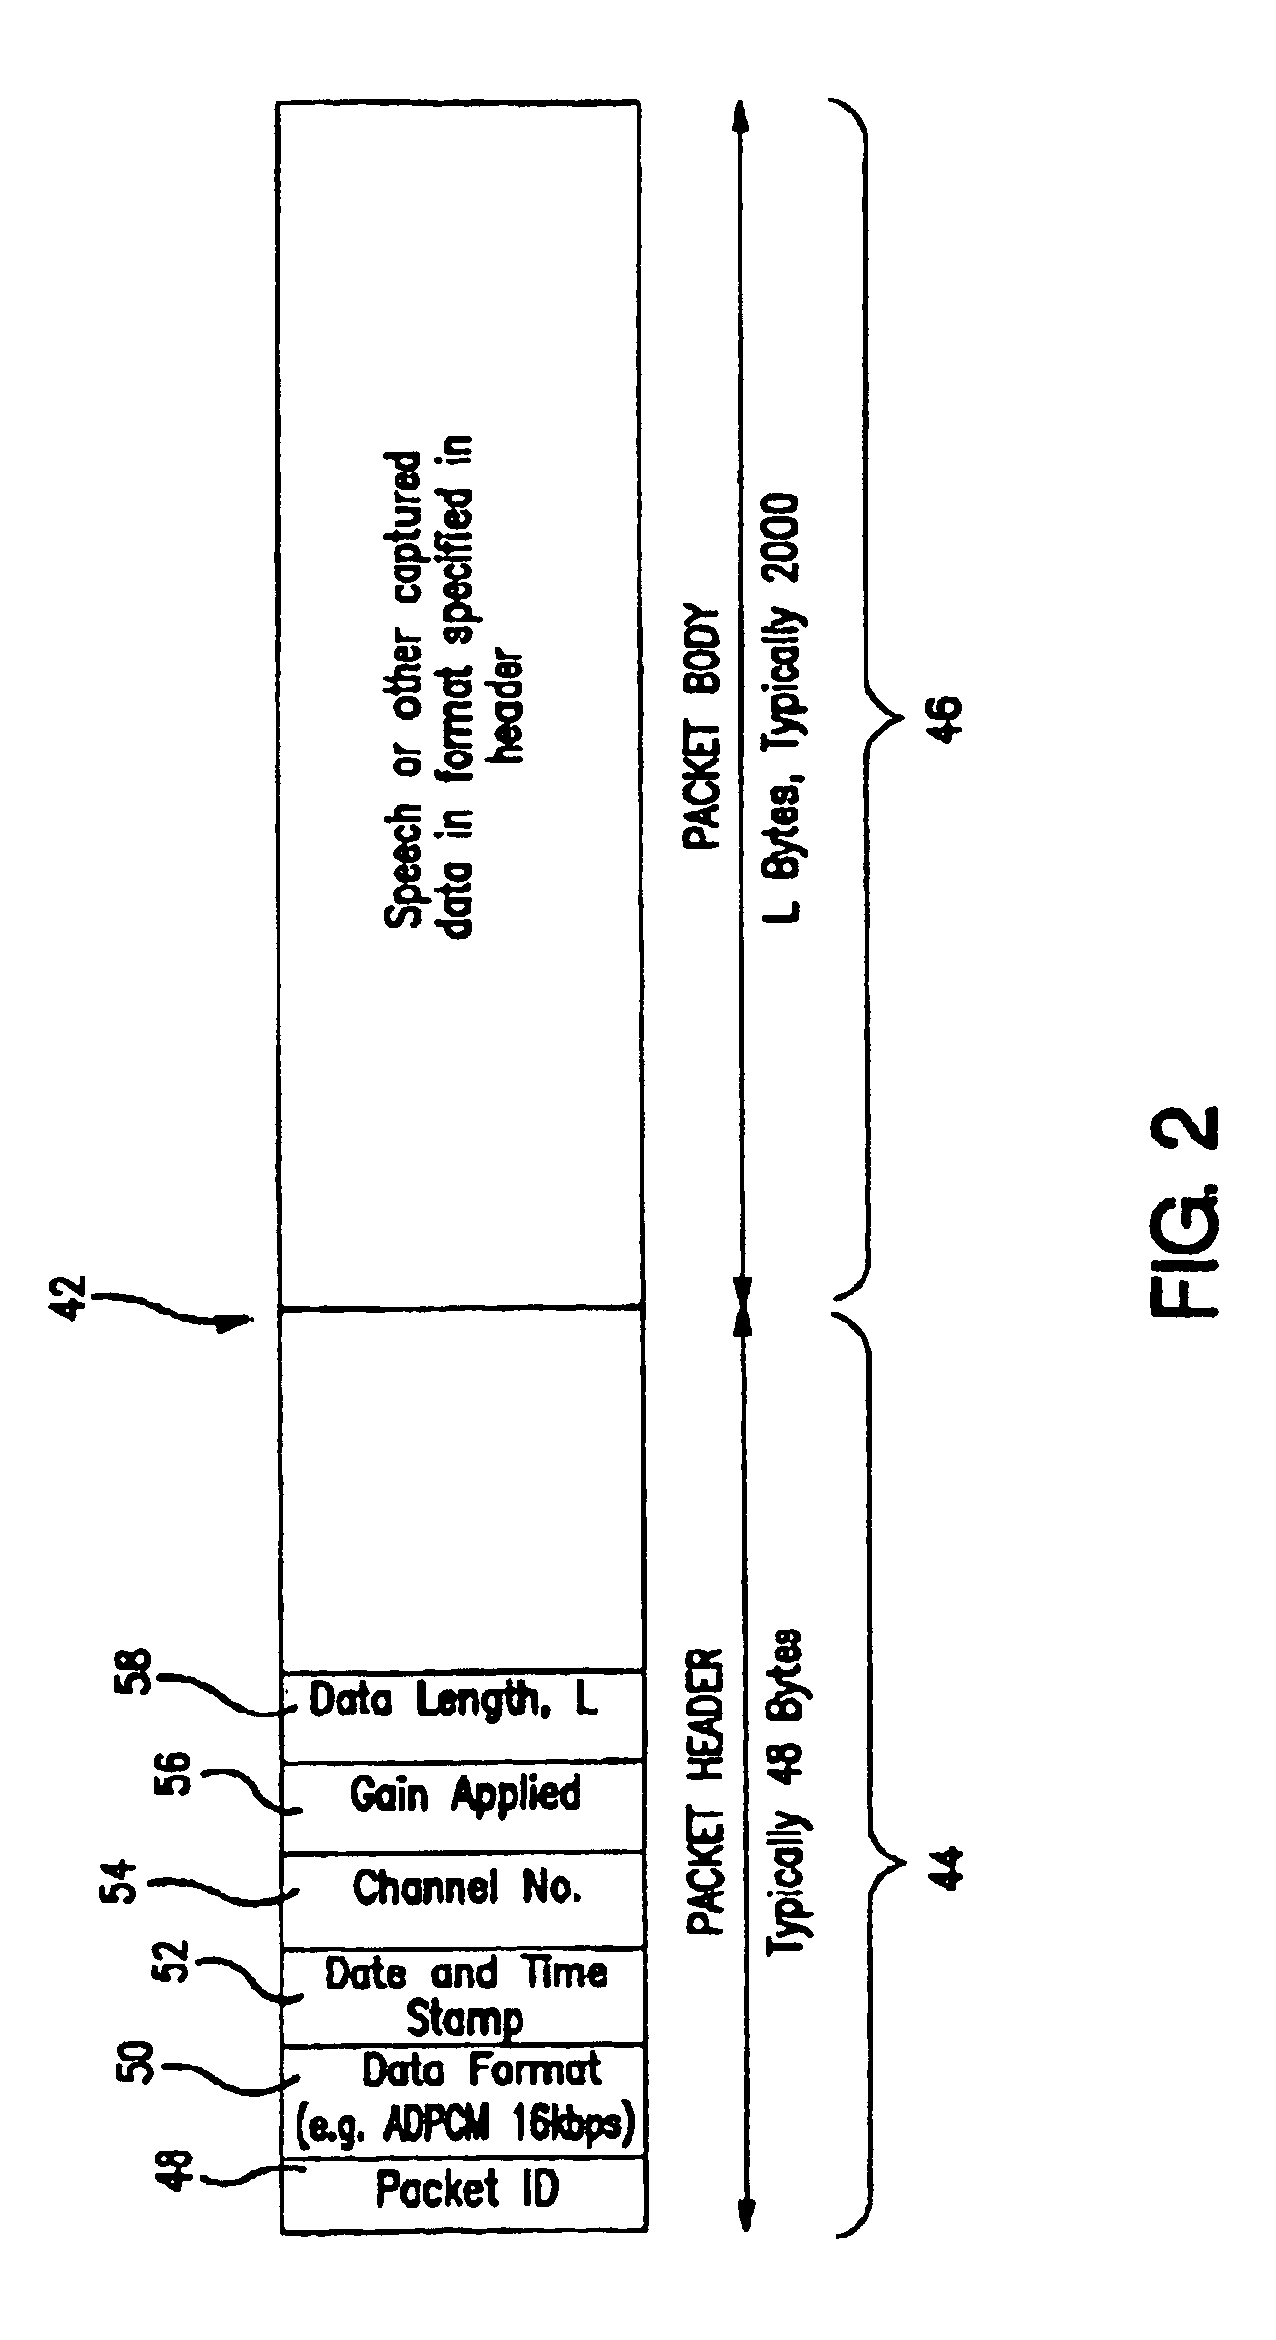 hight resolution of patent drawing